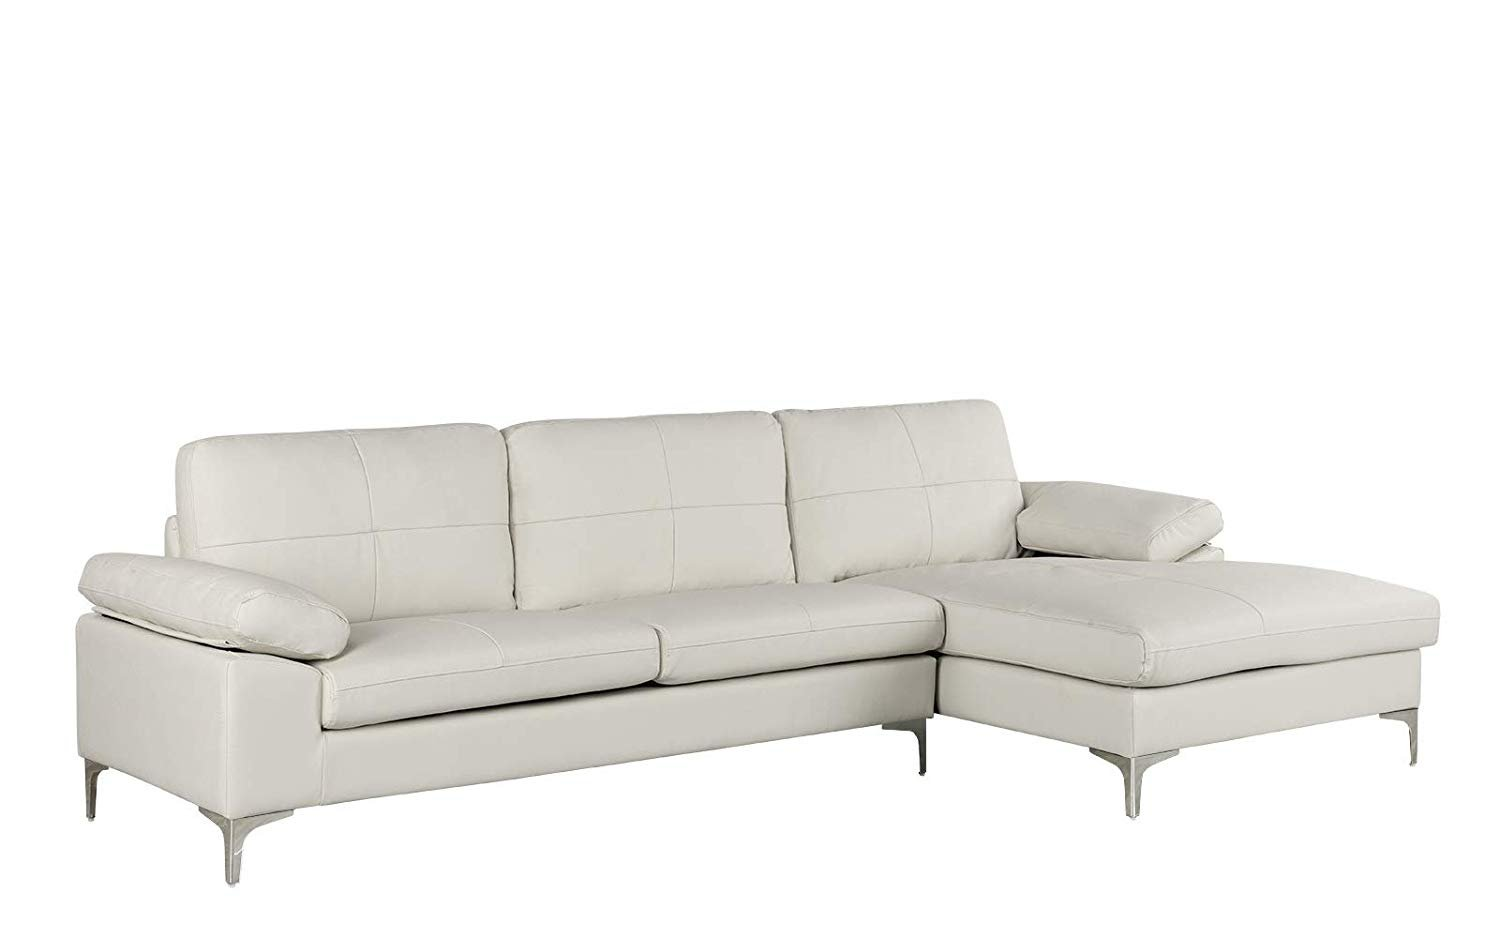 Large Leather Sectional Sofa, L-Shape Couch with Chaise ...